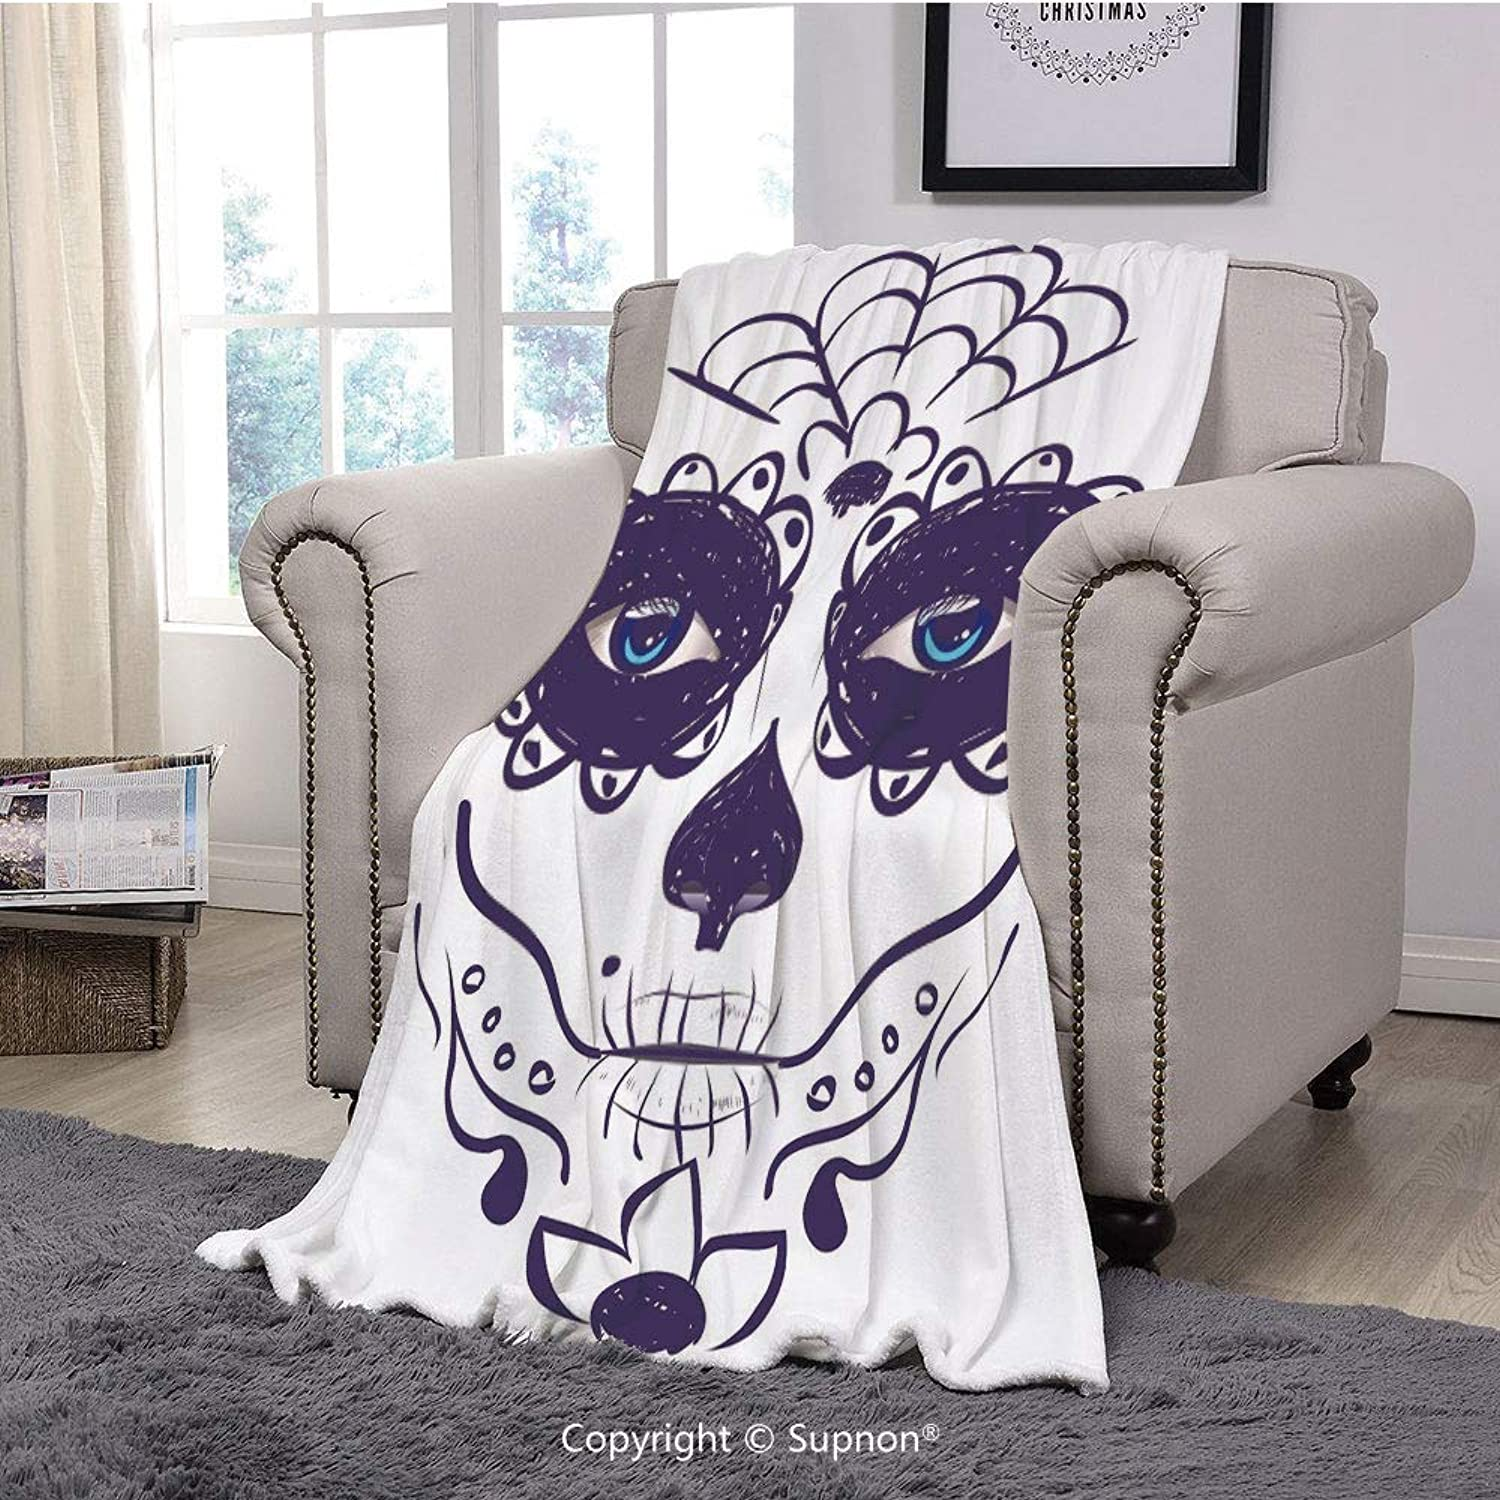 Throw Blanket Super Soft Fuzzy Light Blanket,Day of The Dead Decor,Dia de Los Muertos Sugar Skull Girl Face with Mask Make up,Black White and bluee(51  x 51 )